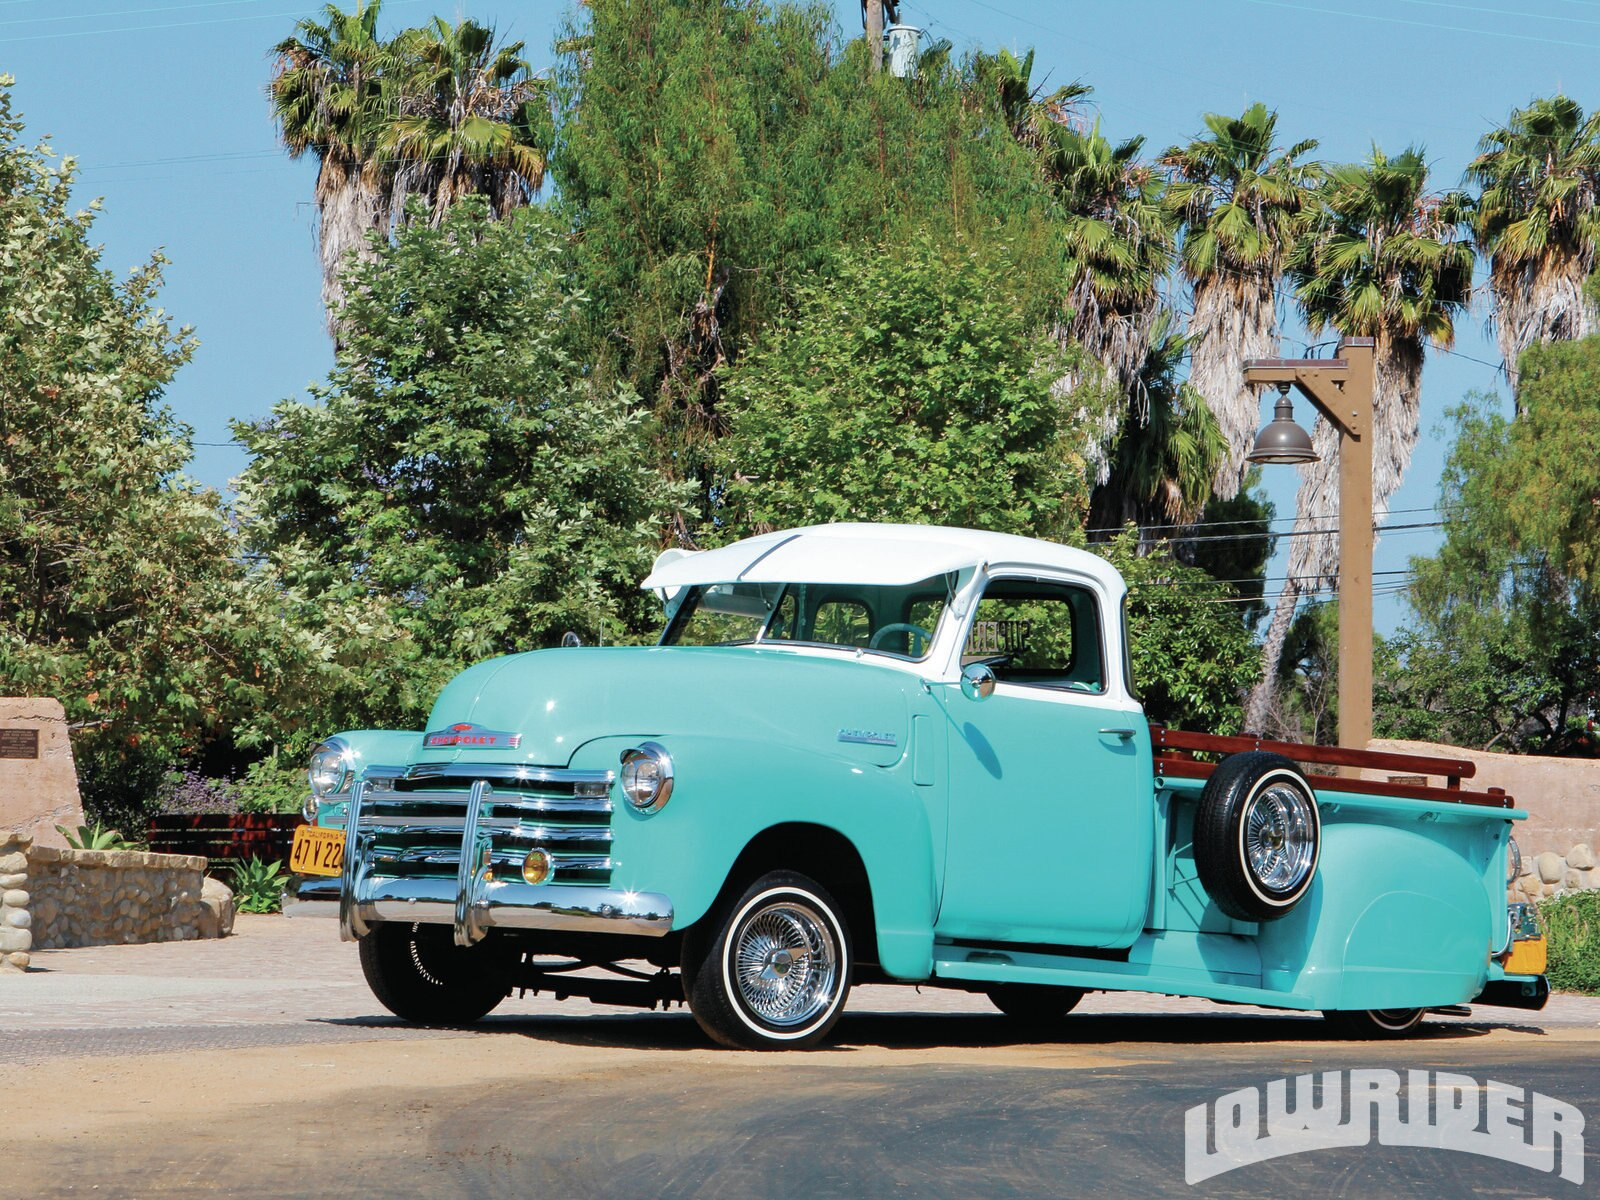 1210-lrmp-01-o-1947-chevrolet-3100-pickup-driver-side-front-view1